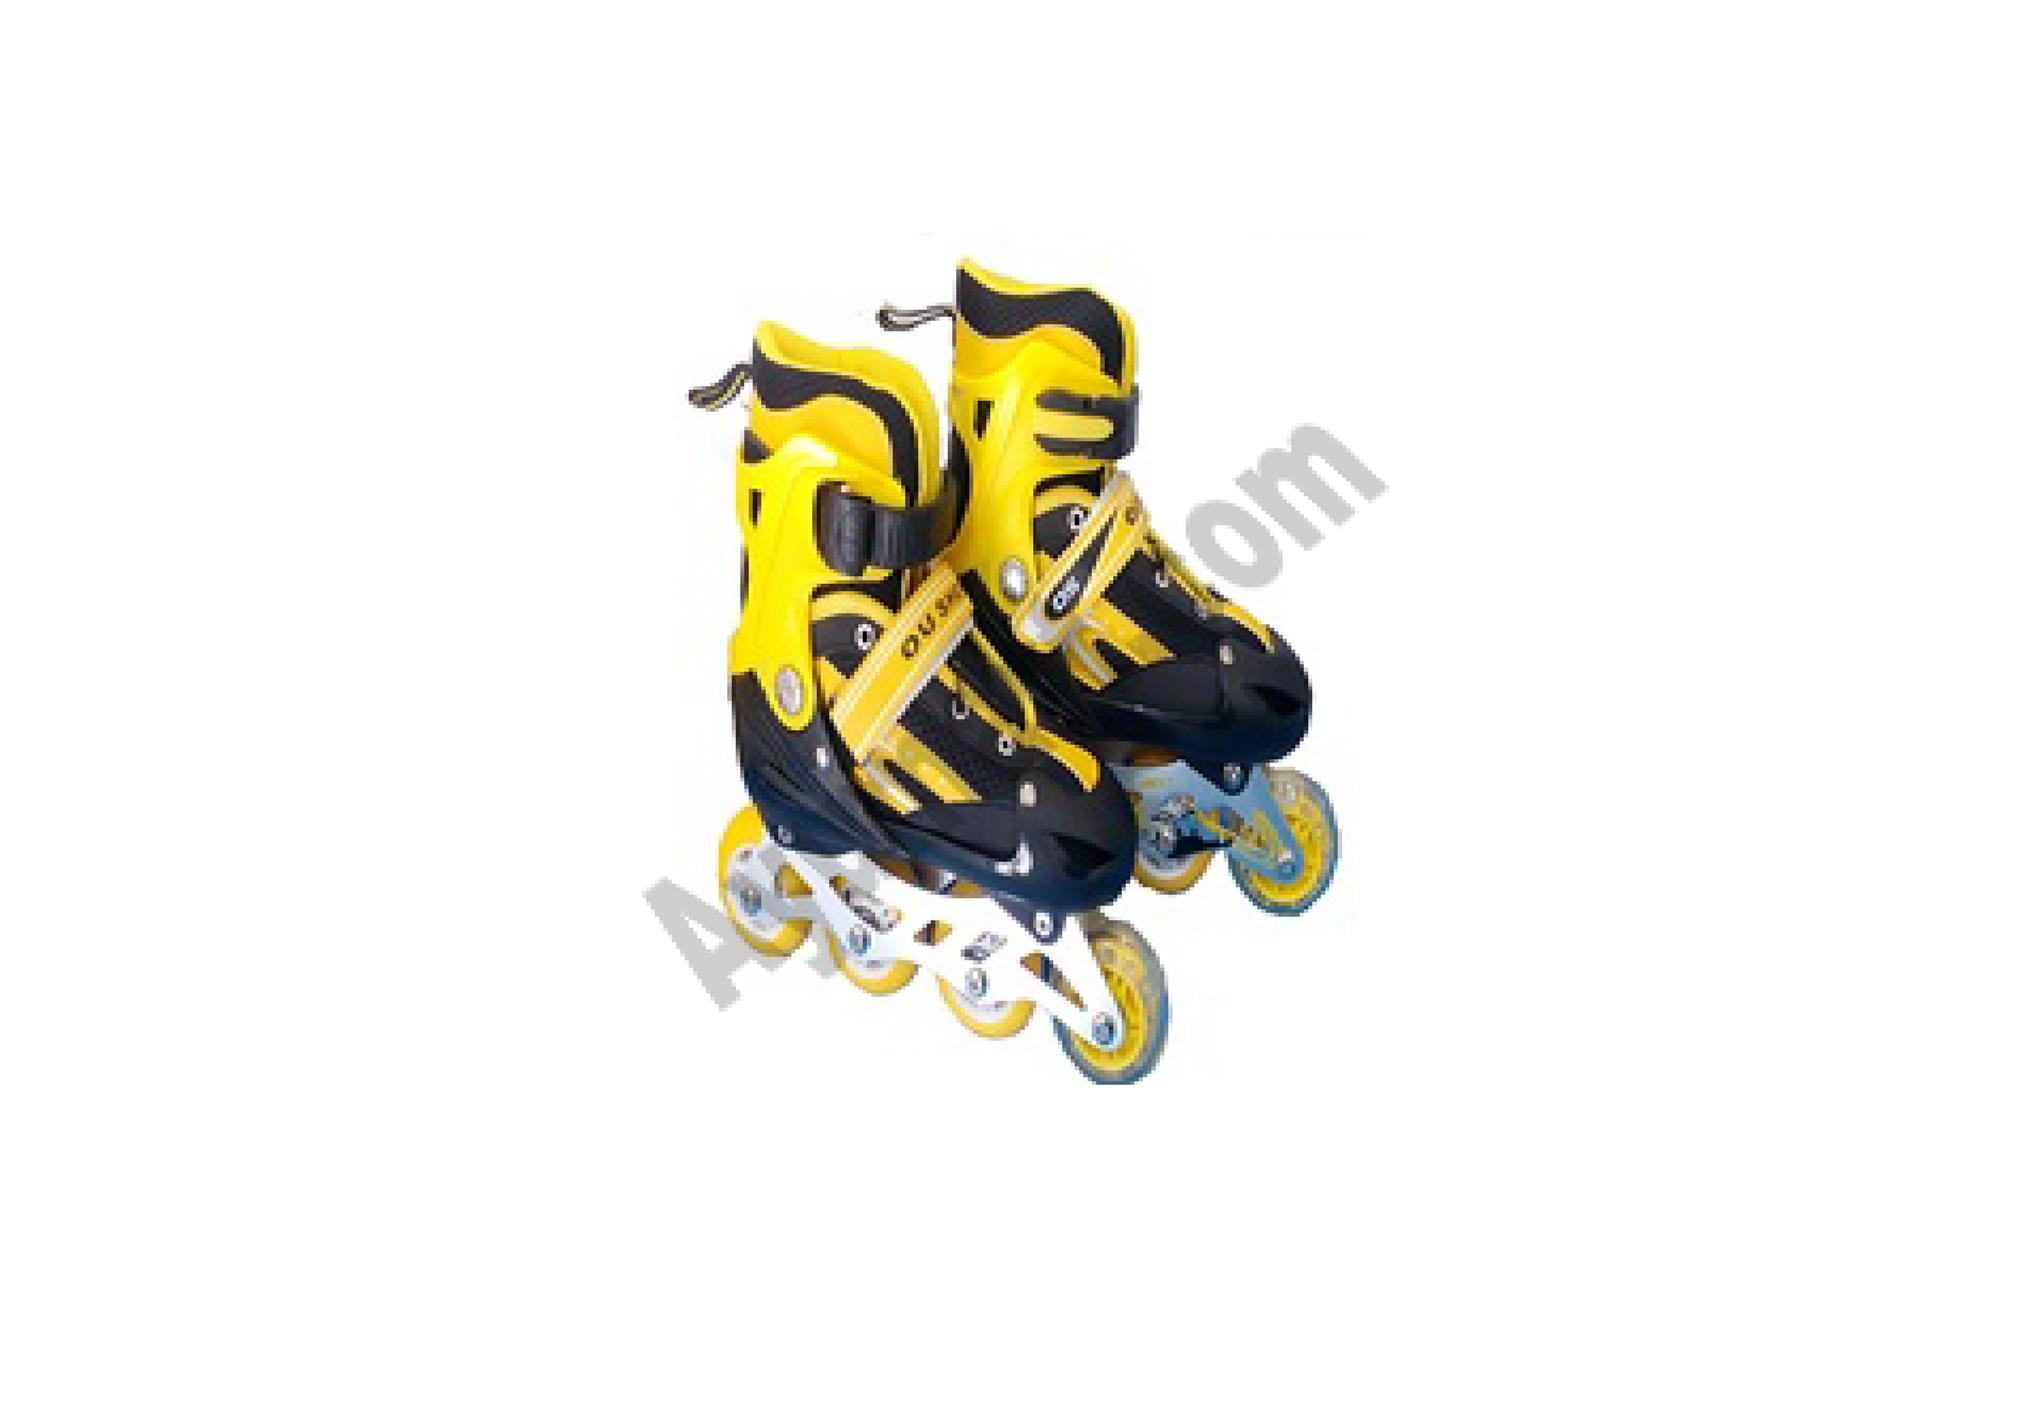 Roller skate shoes malaysia - Bundle Sokano Inline Skated Roller Shoes With Adjustable Length